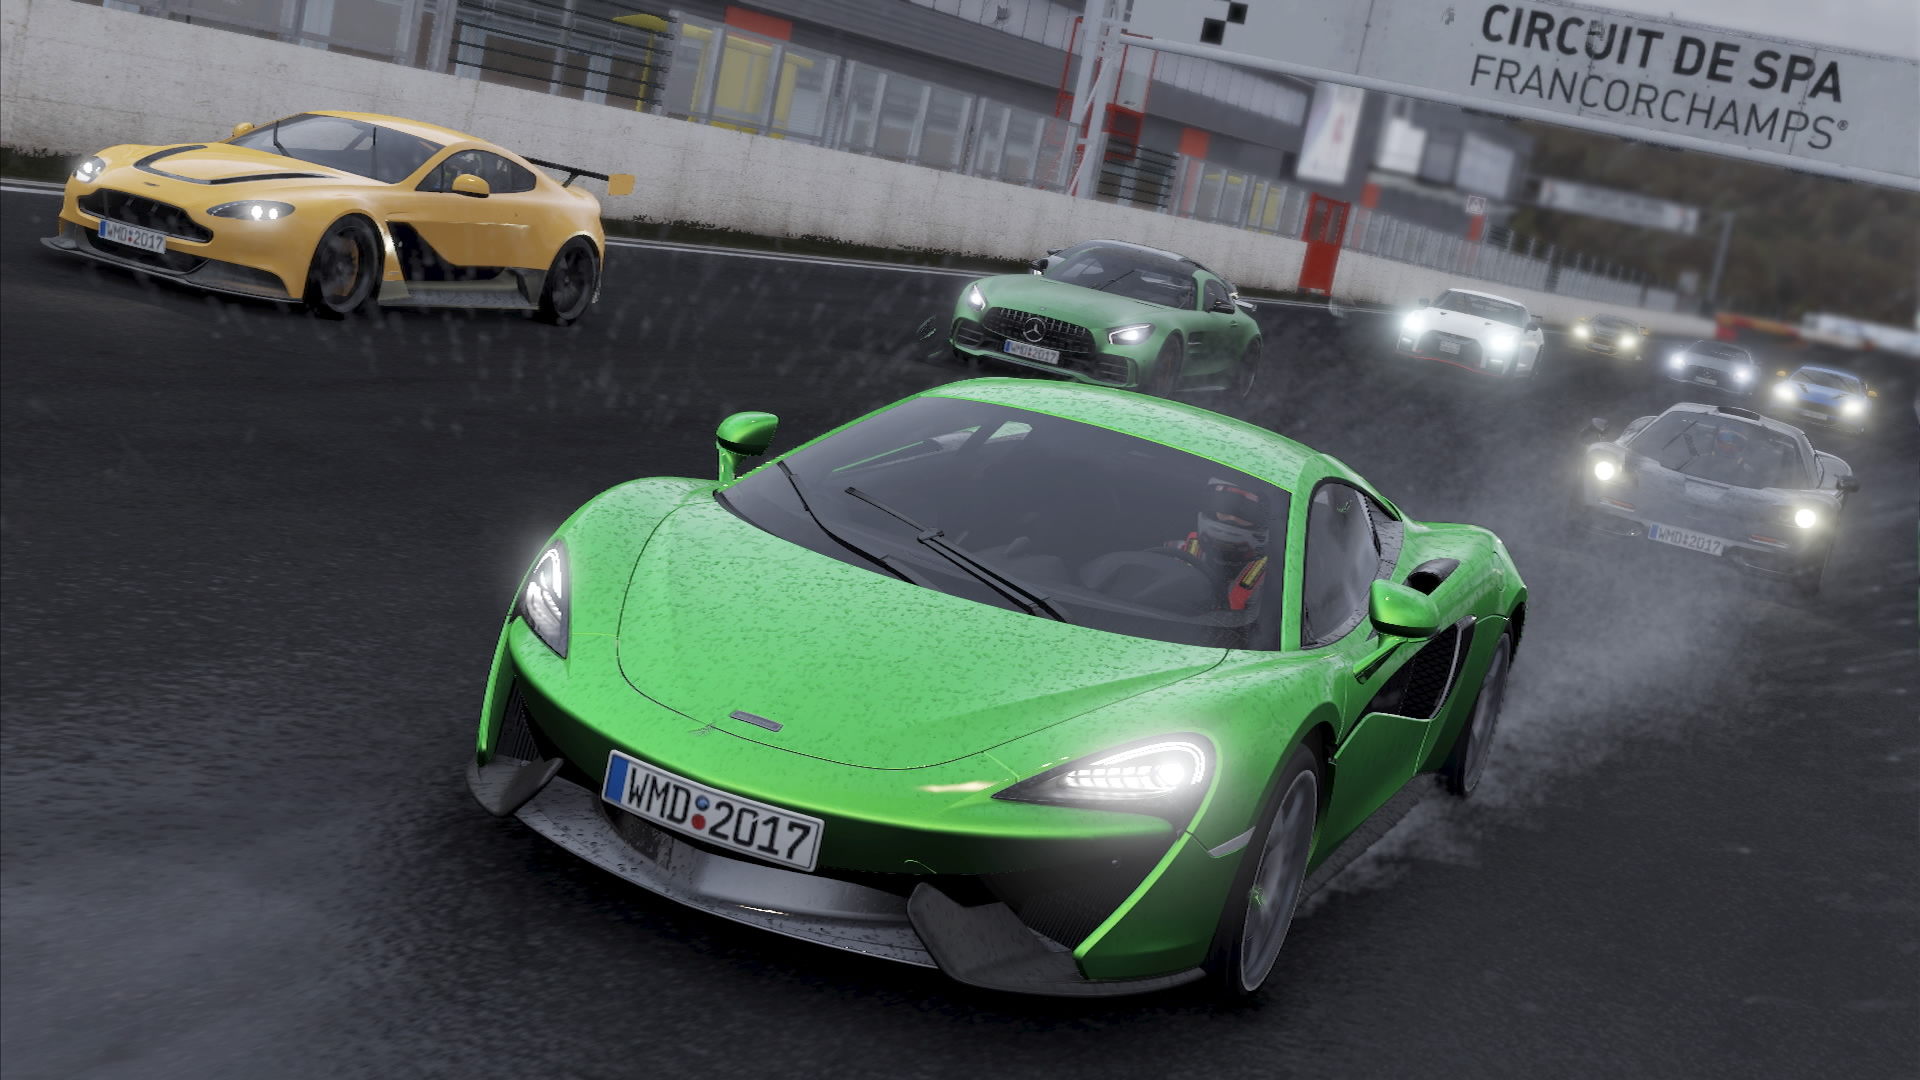 Mclaren 570s And Civic Grc Star In This Week S Project Cars 2